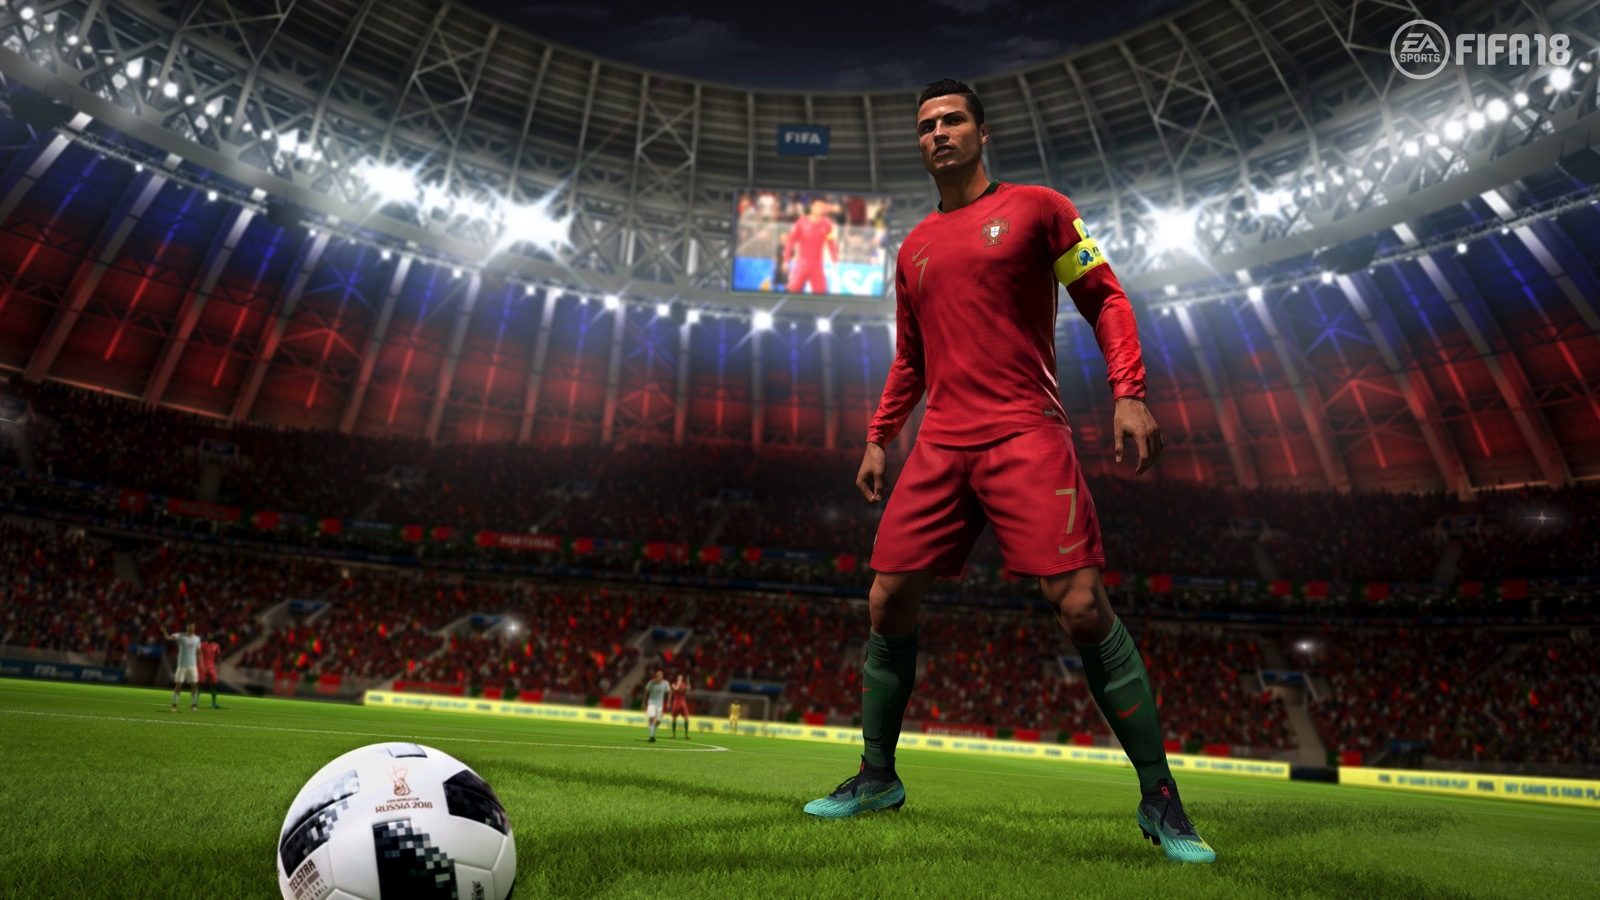 EA faces prosecution in Belgium over Federation Internationale de Football Association  19 'loot boxes'